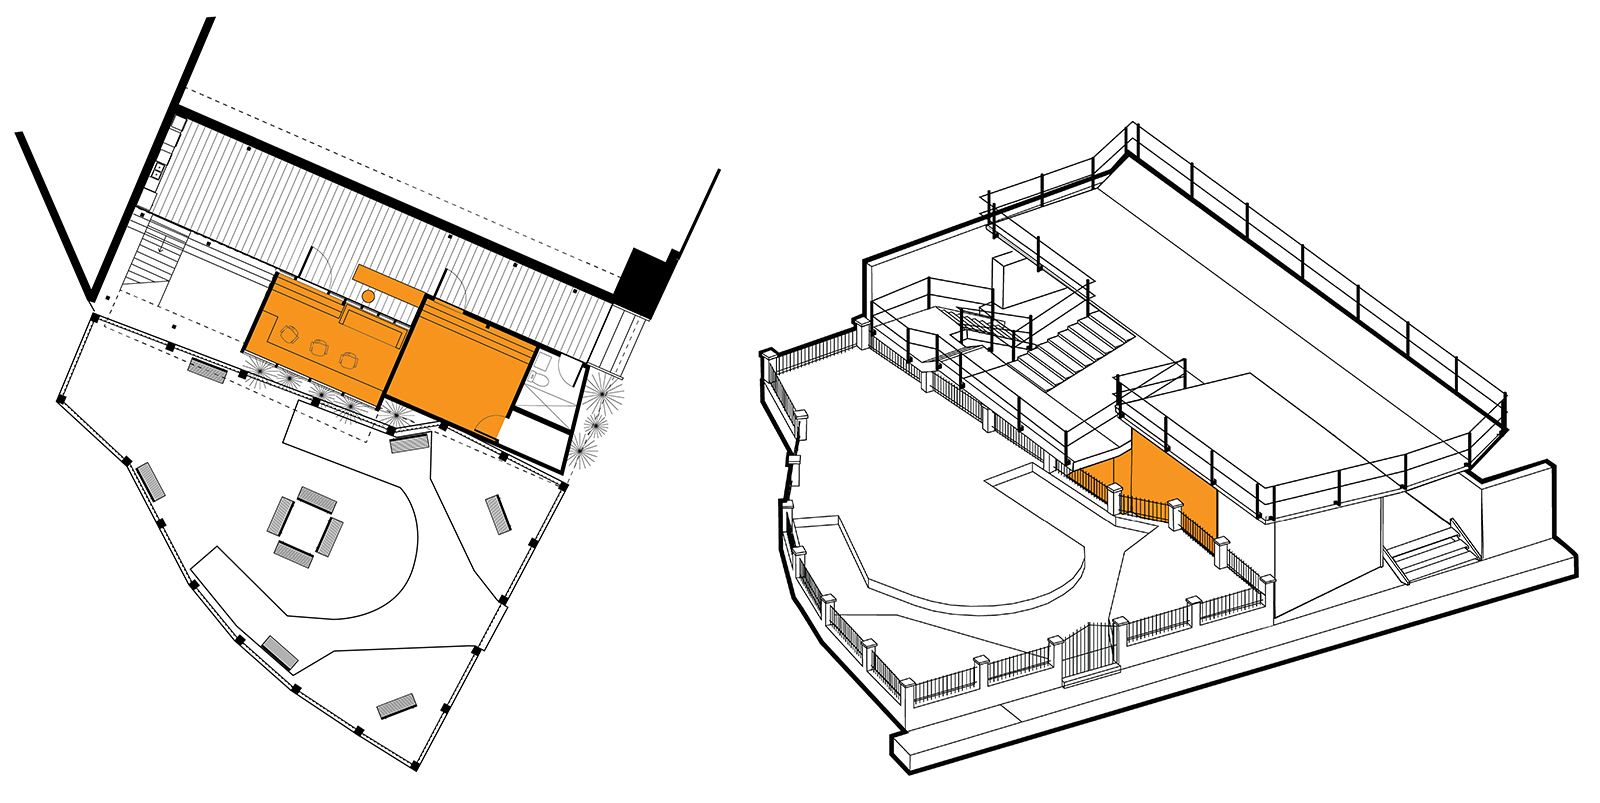 Plan and massing drawings of Phase 2 of YELE including the first studio, recording booth, and reception area